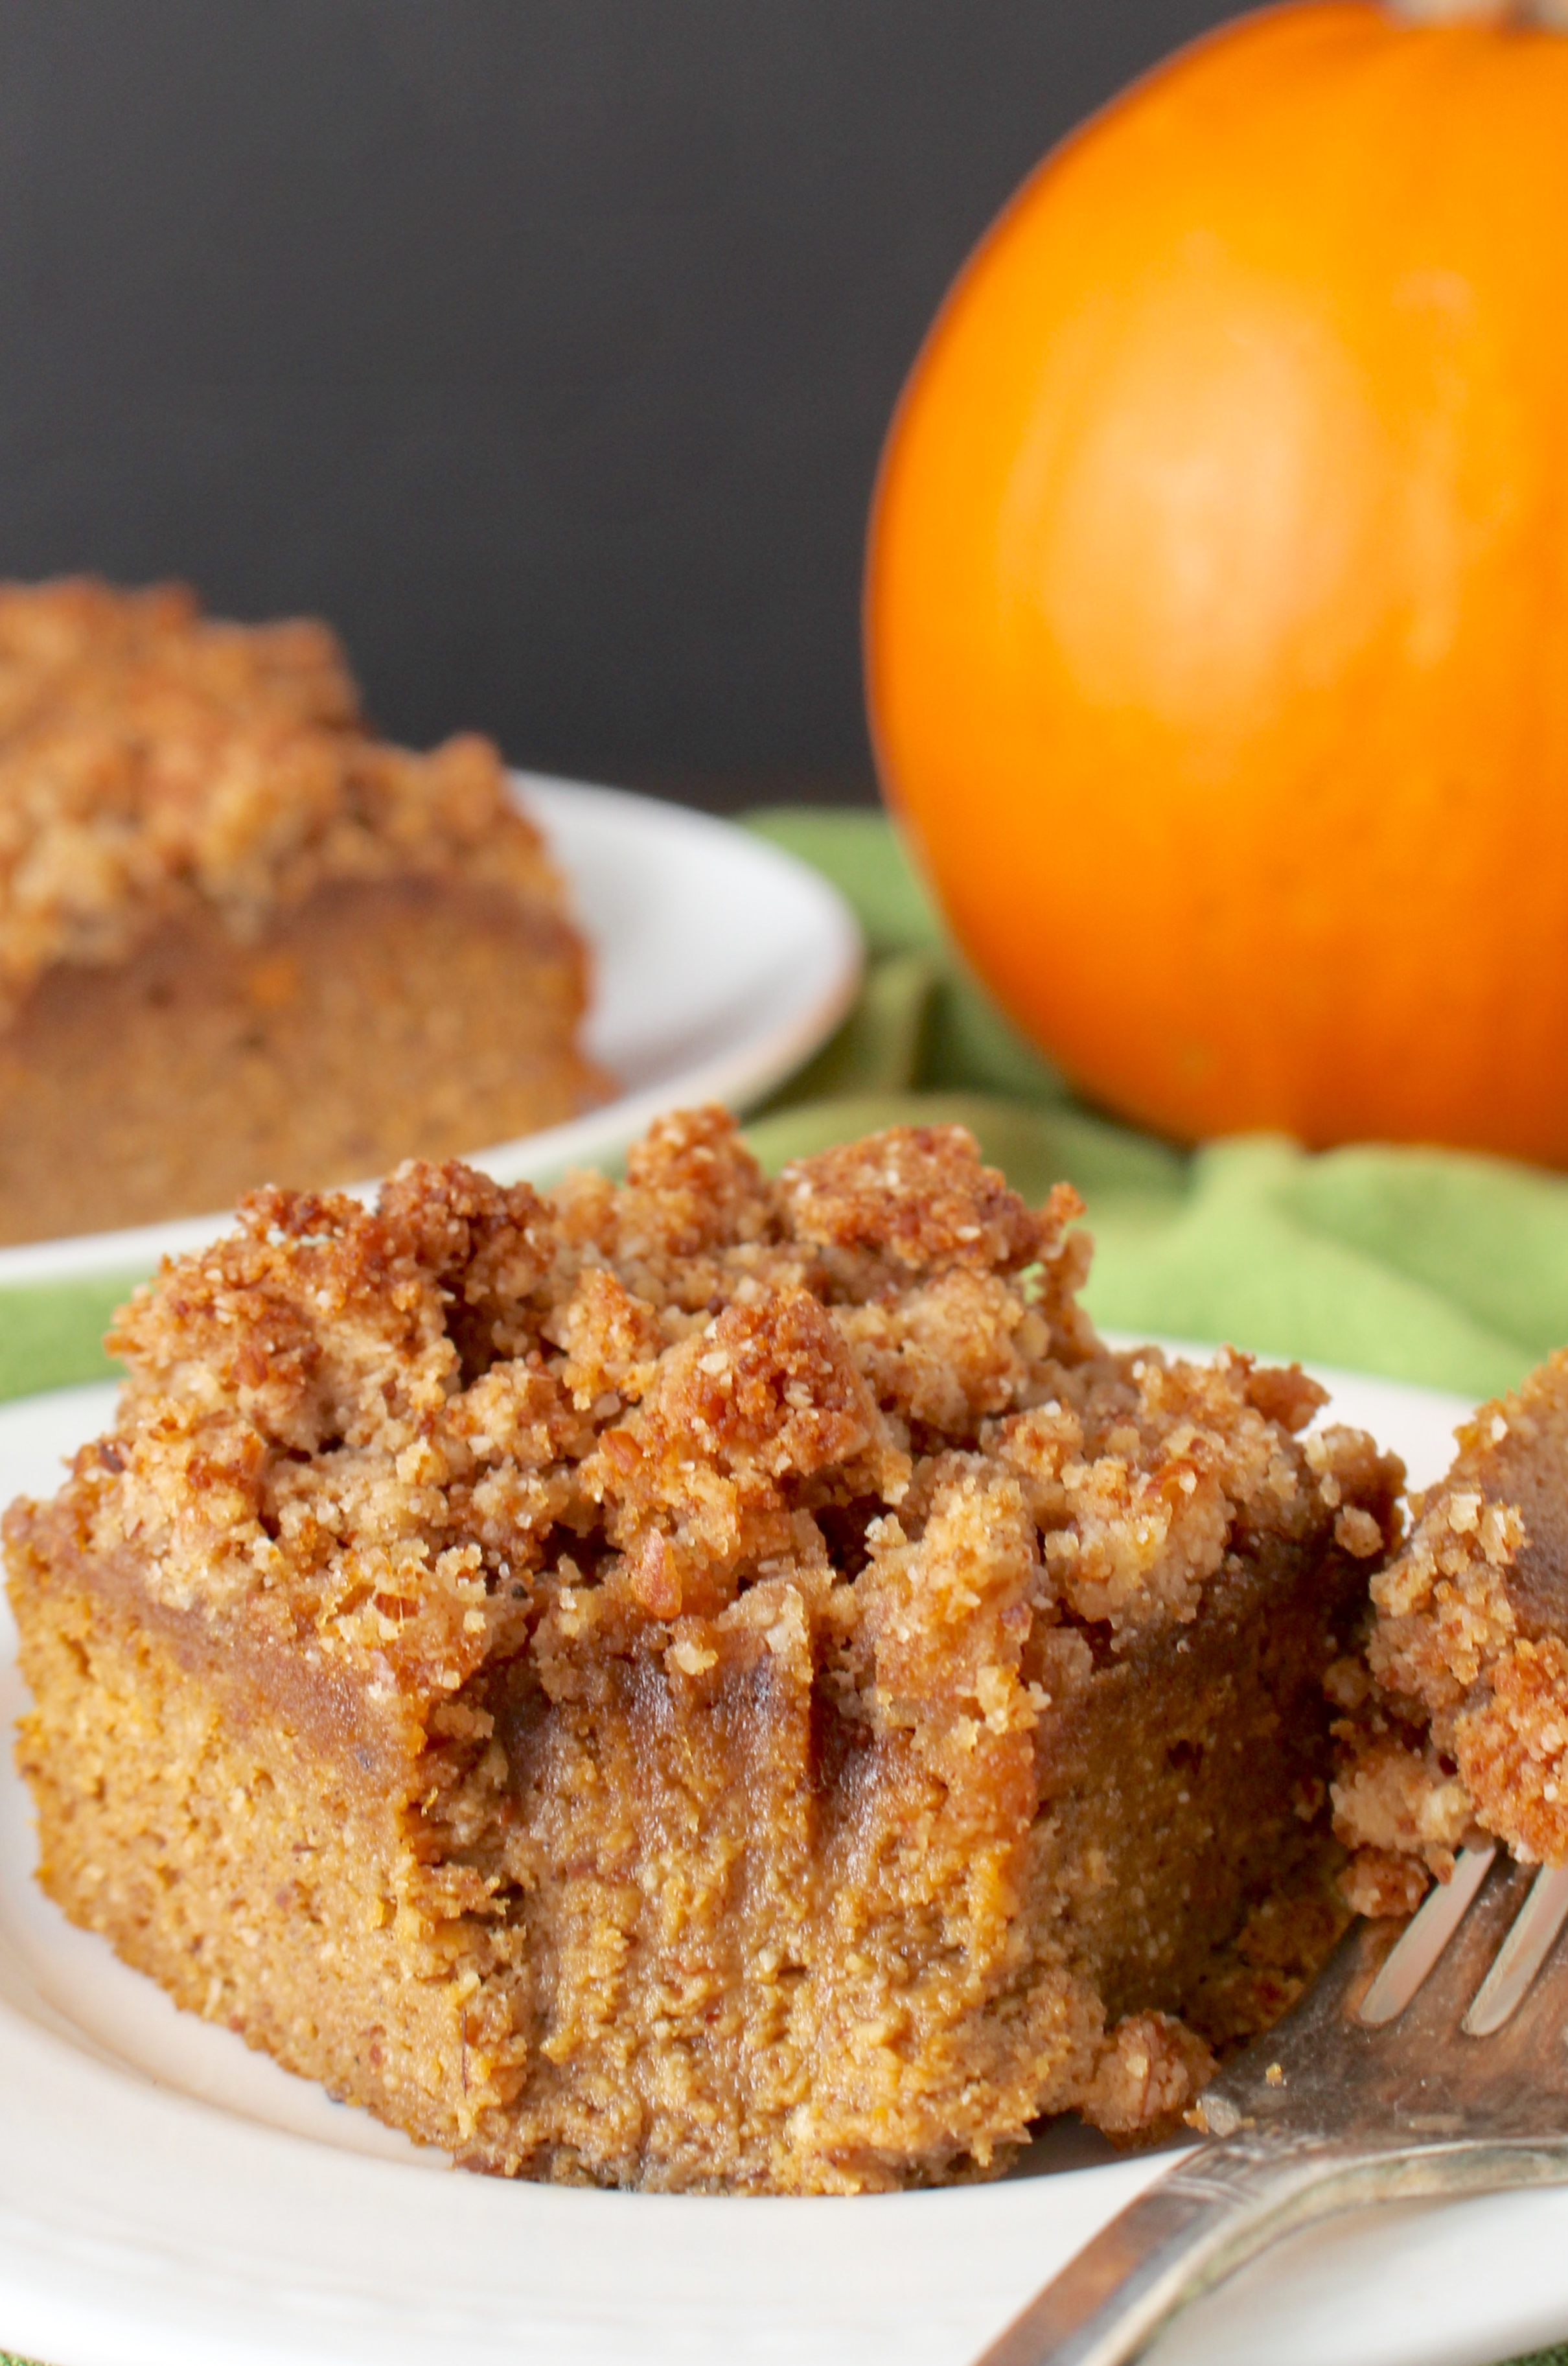 Coffee Cake Made Without Eggs